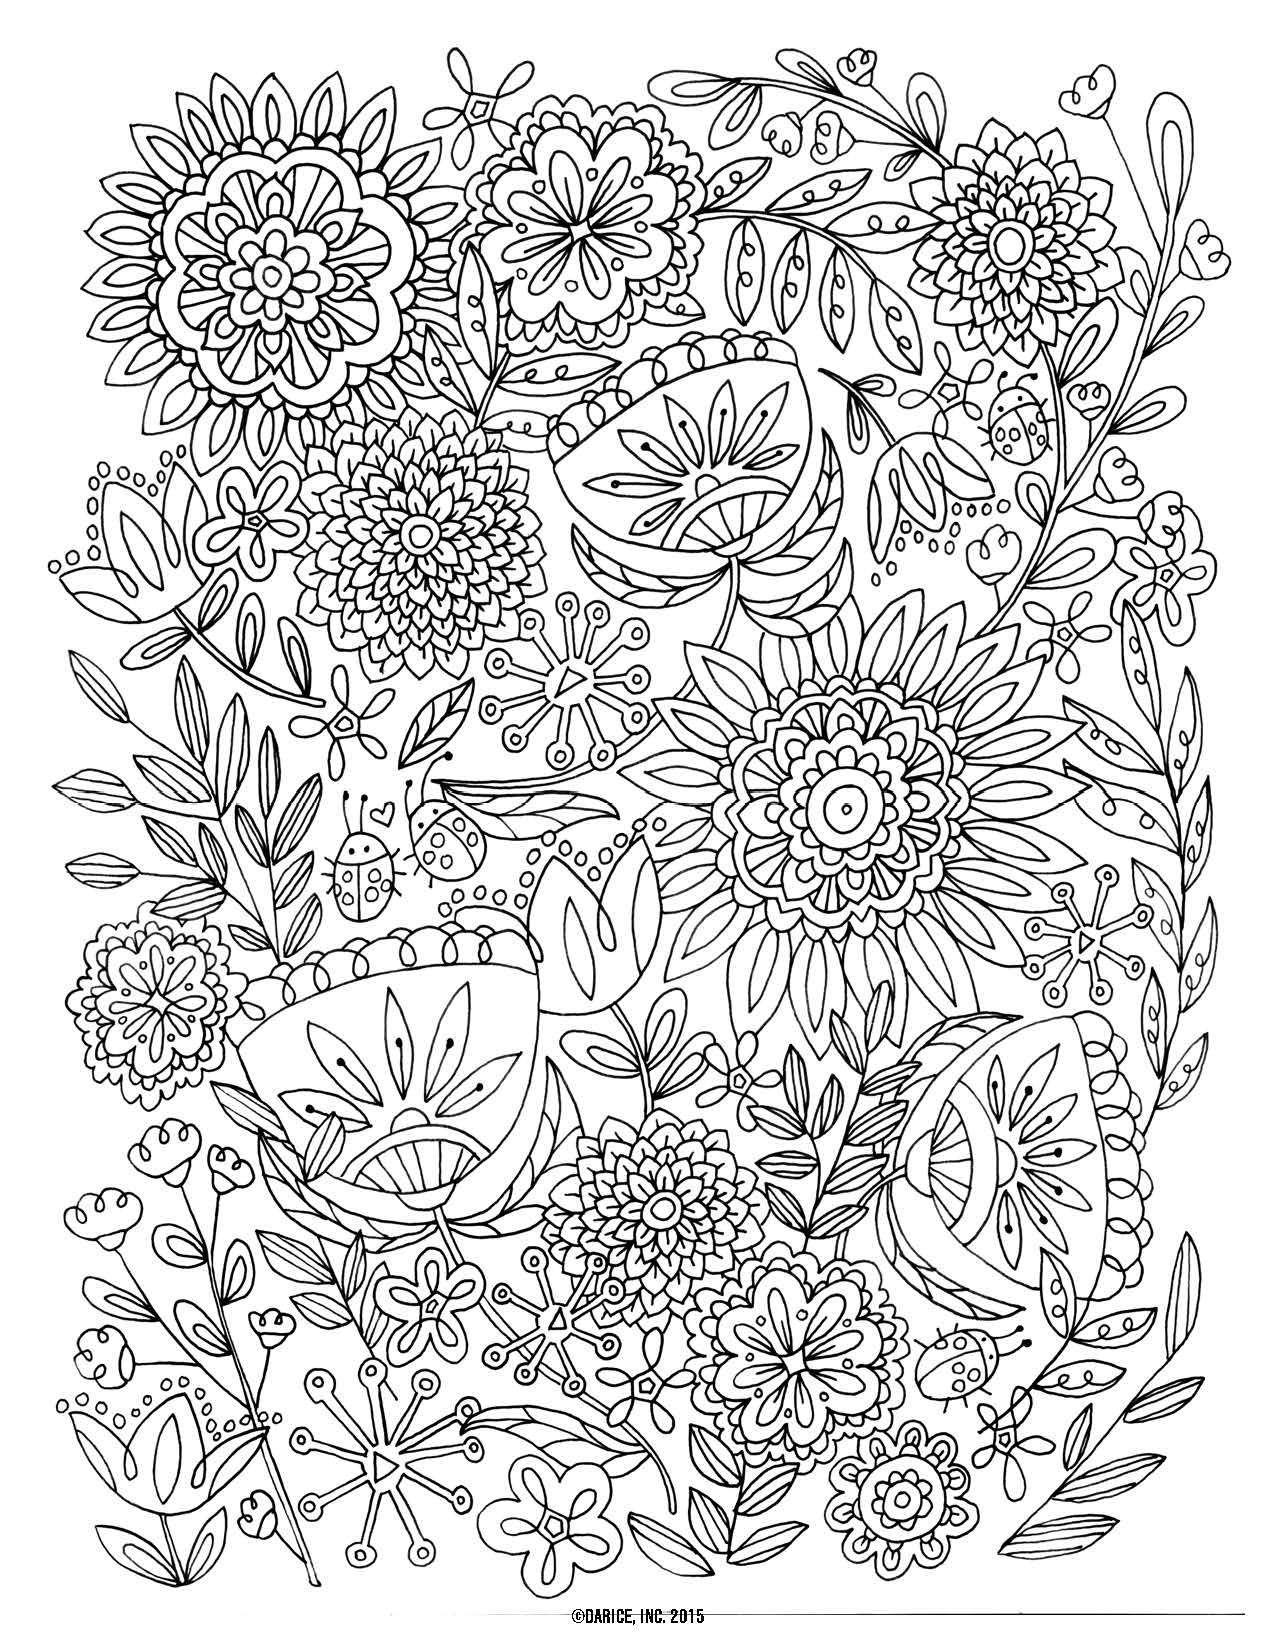 big mandala coloring pages Download-I have a SUPER fun Activity to do with these free coloring pages 14-c